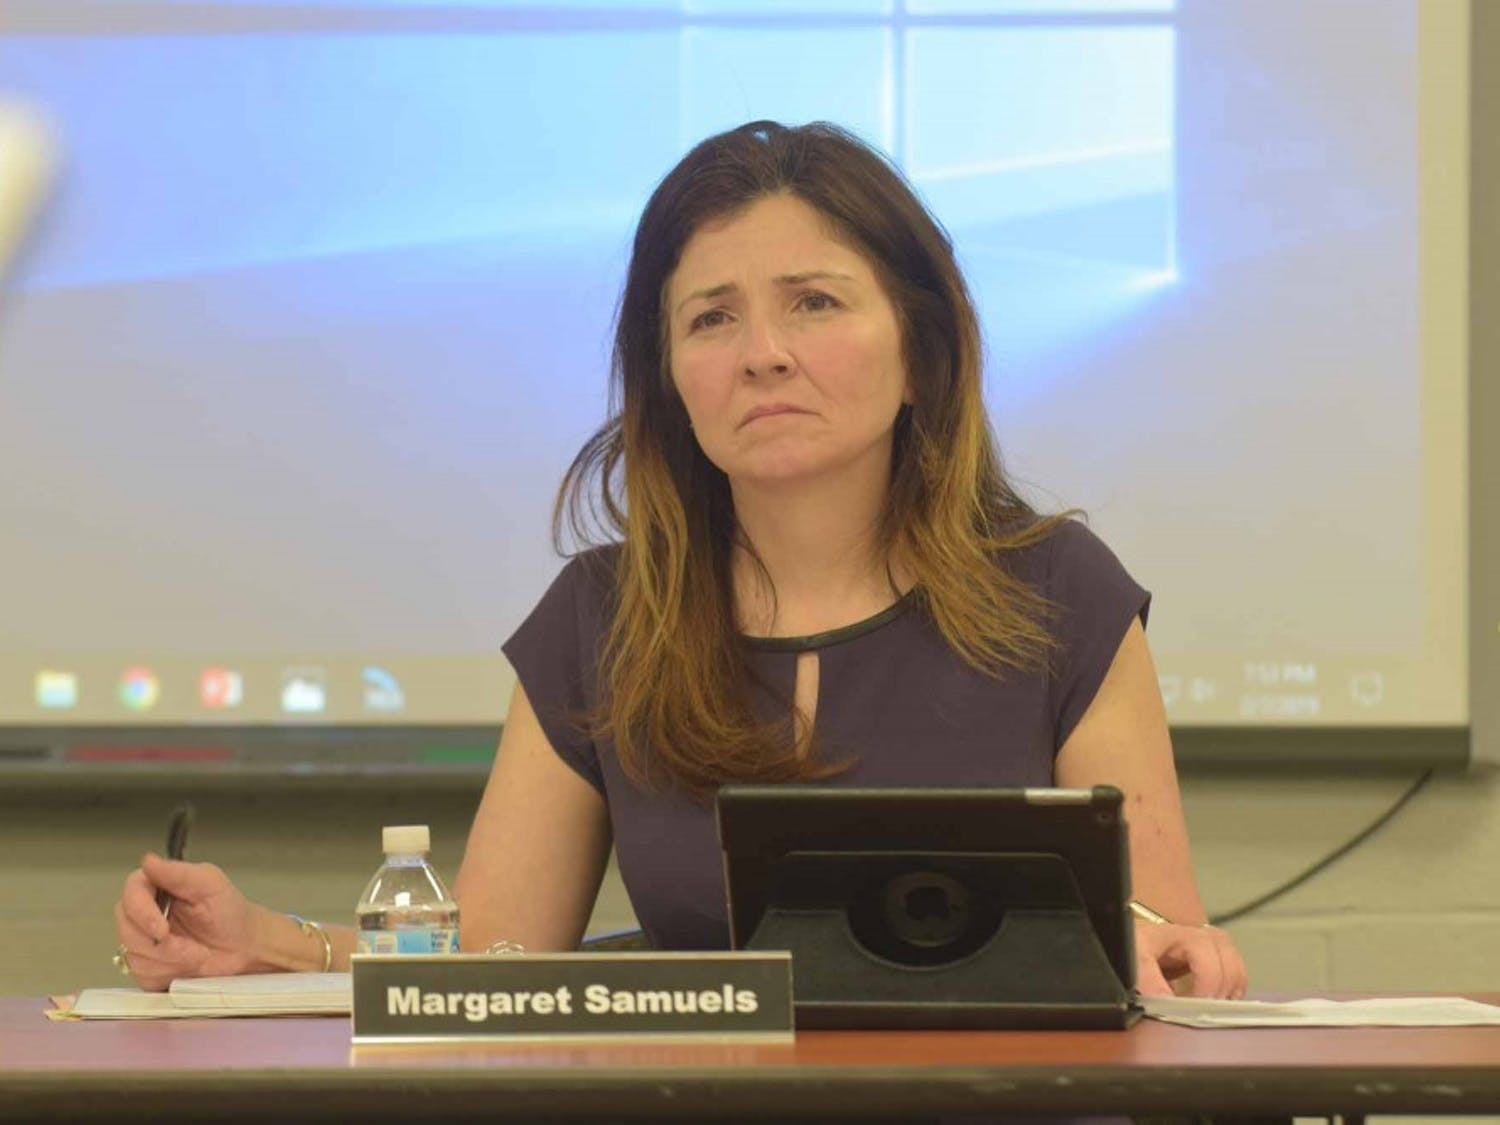 Margaret Samuels, chair of the school board of the Chapel Hill - Carrboro school district sits on a meeting on Friday, Feb. 7, 2019 at the Lincoln Center, 750 S. Merritt Mill Rd.